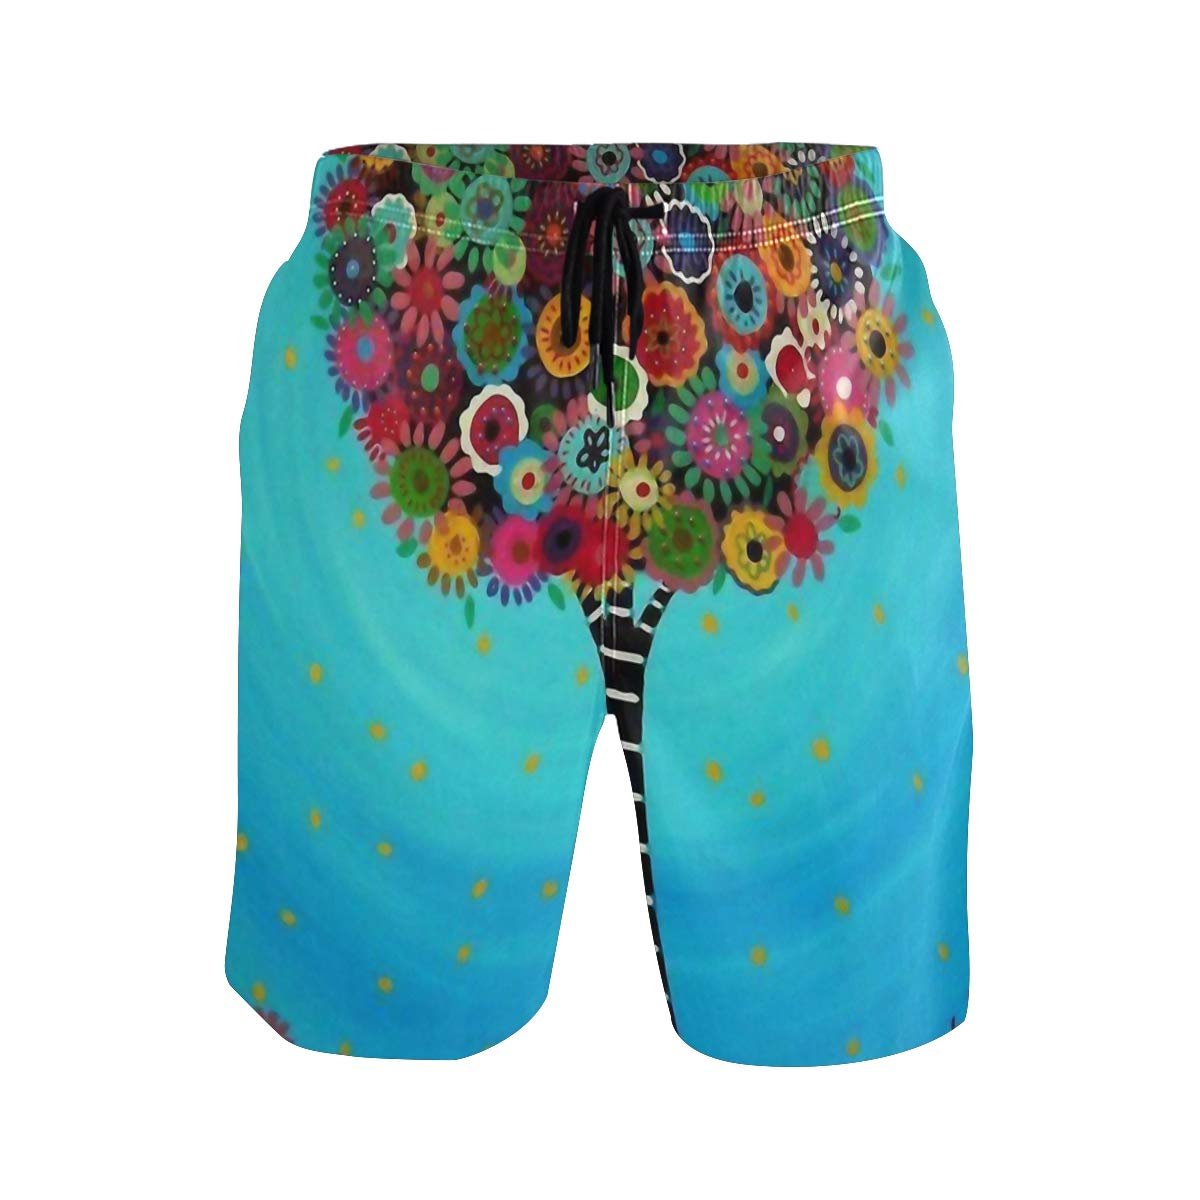 WIHVE Mens Swim Trunks Tree of Life Quick Dry Beach Board Short with Mesh Lining